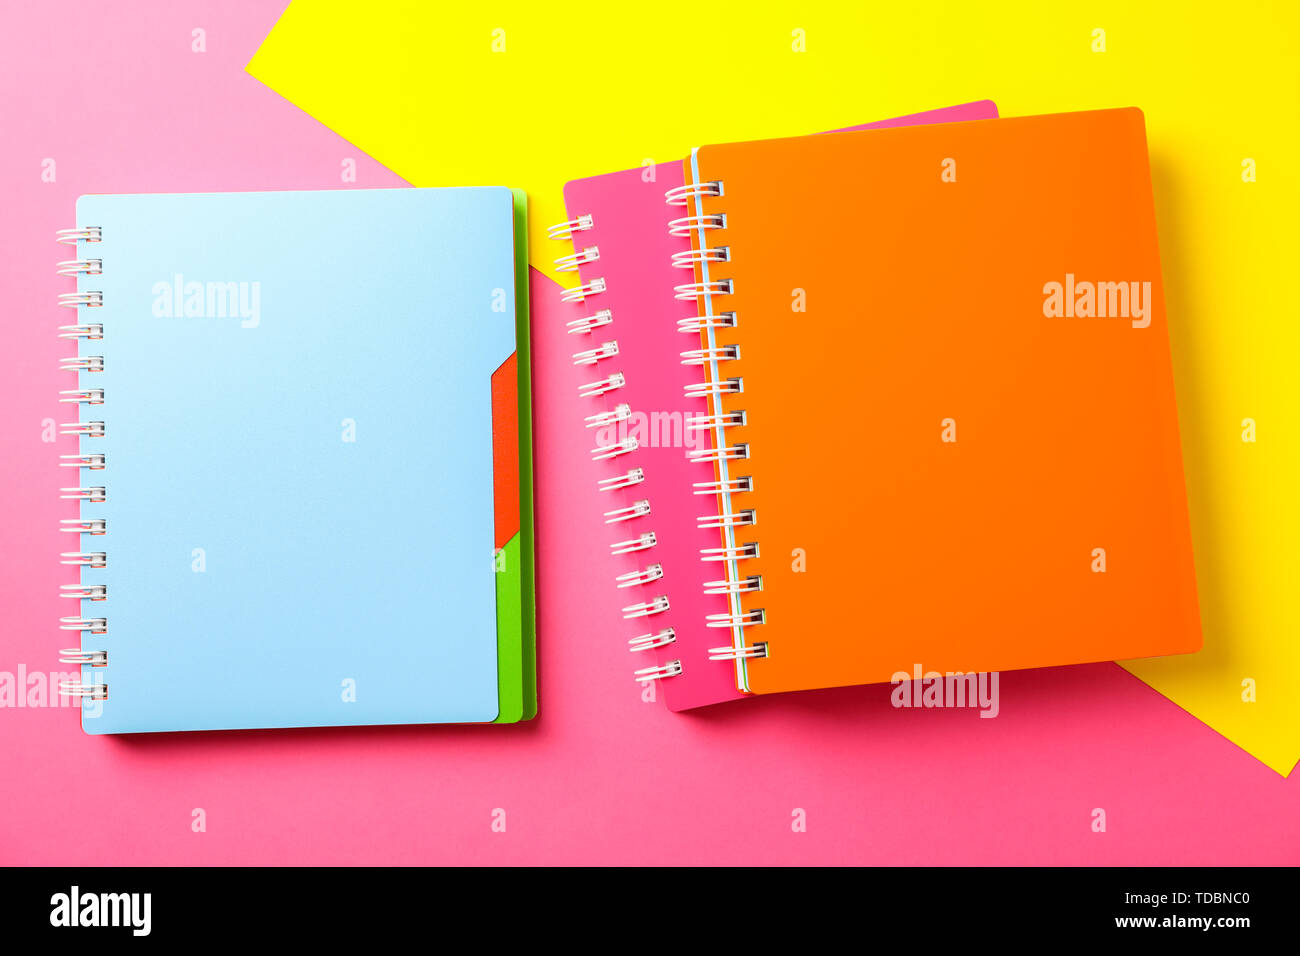 Composition with copybooks on two tone background, space for text - Stock Image